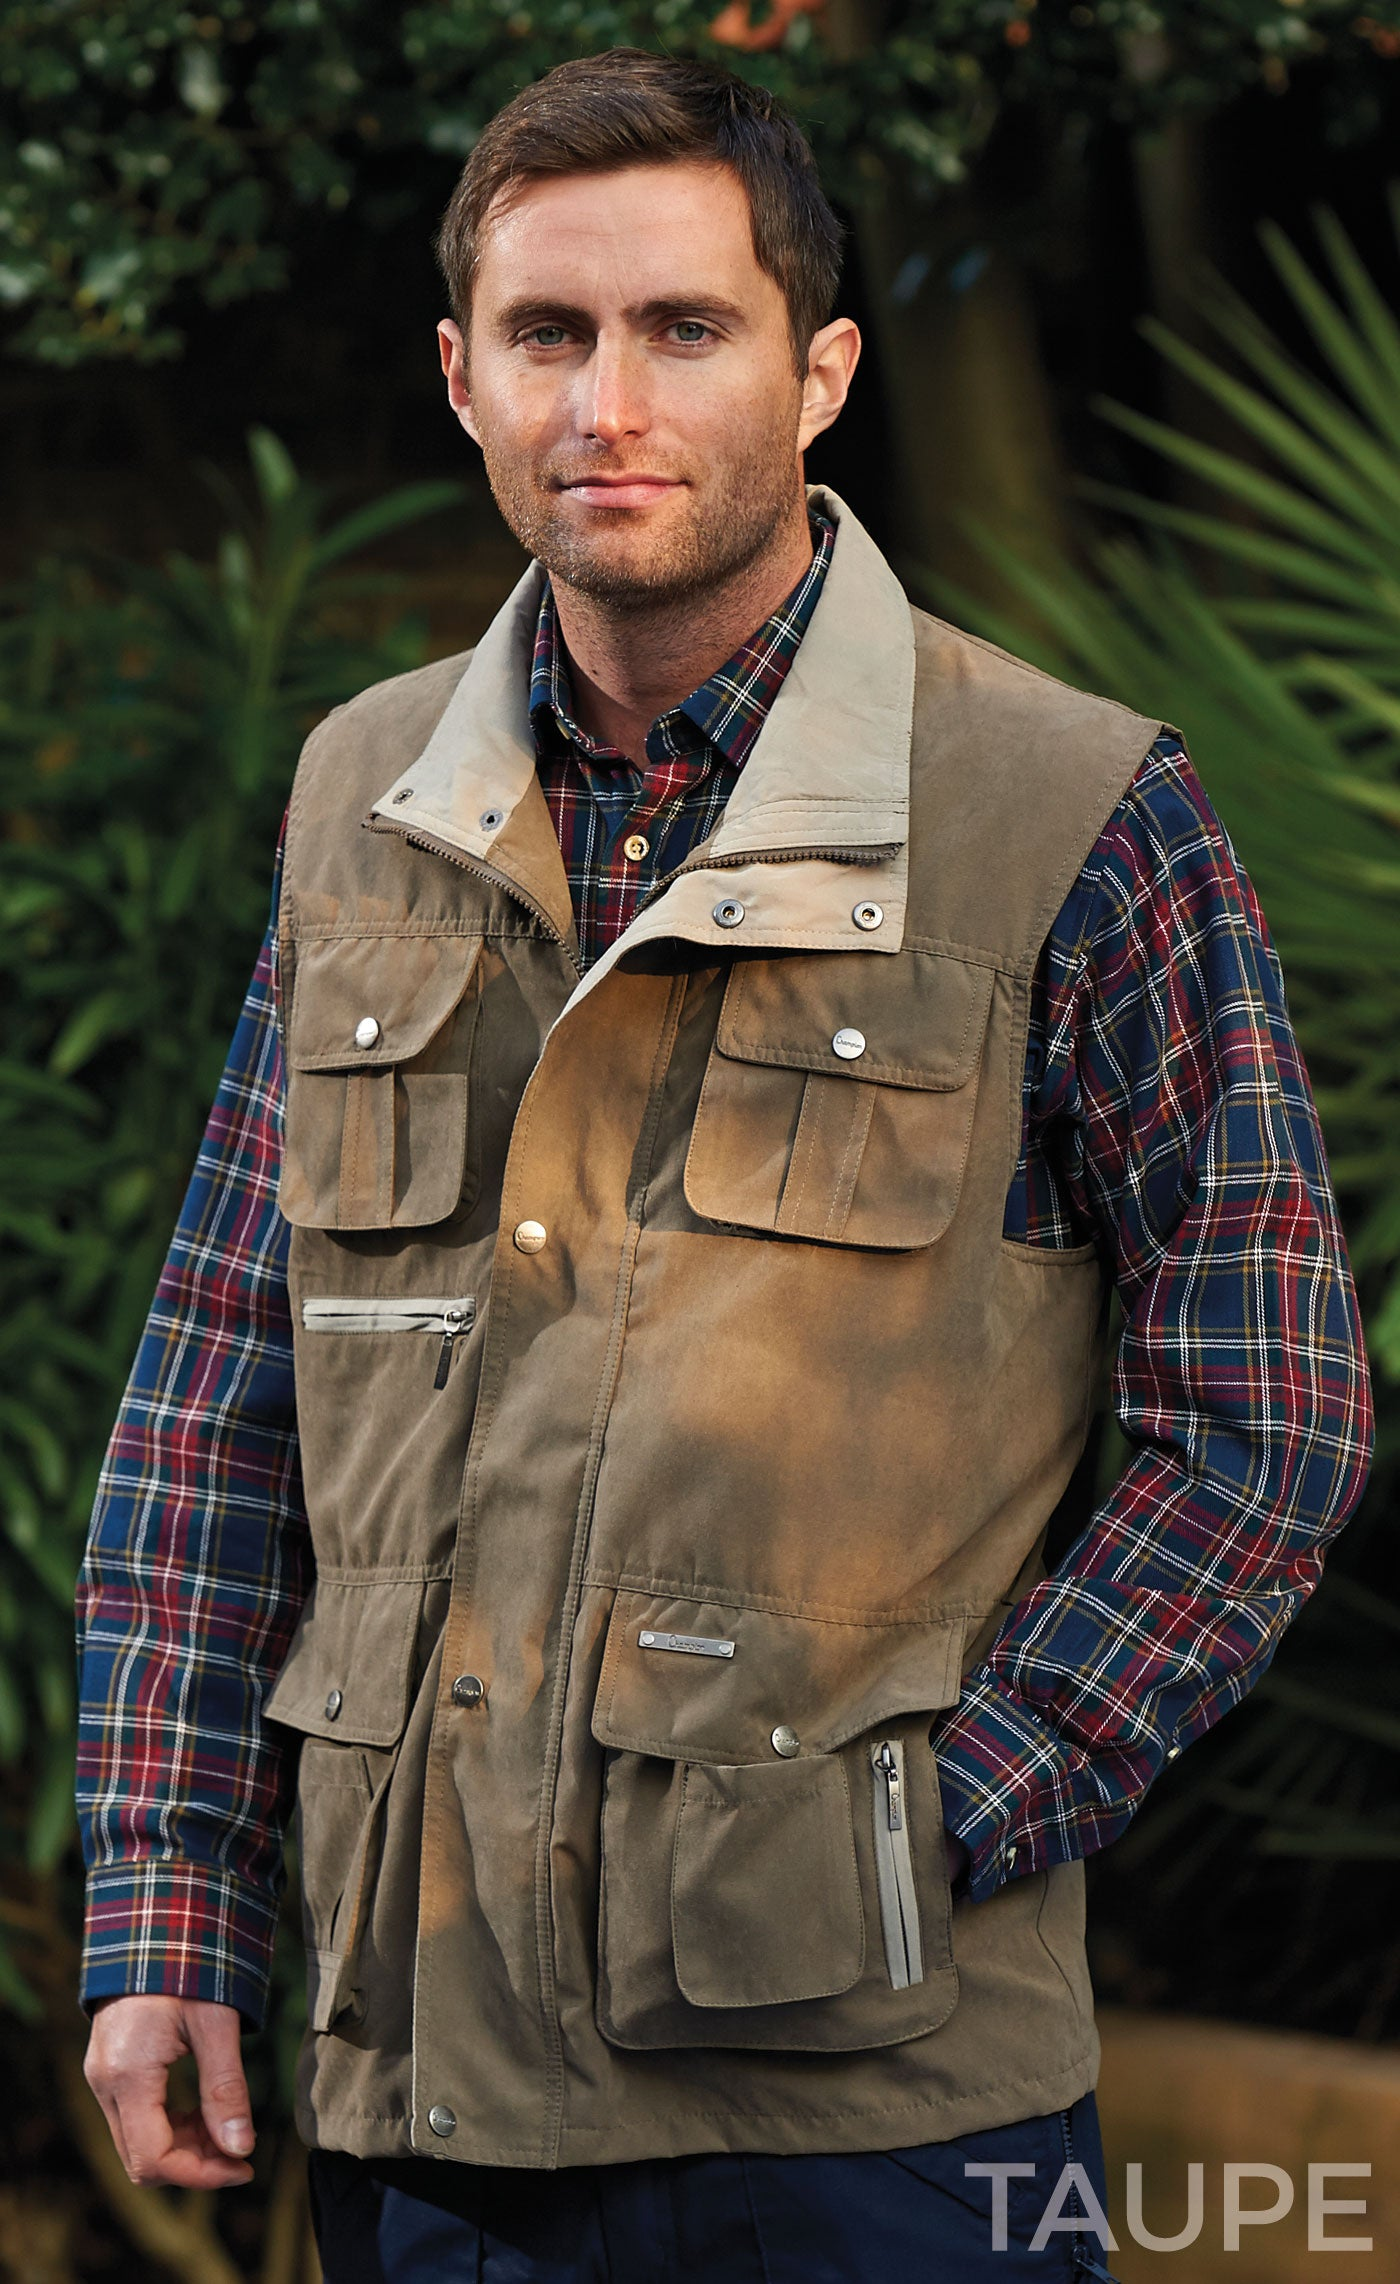 Taupe Champion Farnham Lightweight Multi Pocket Bodywarmer